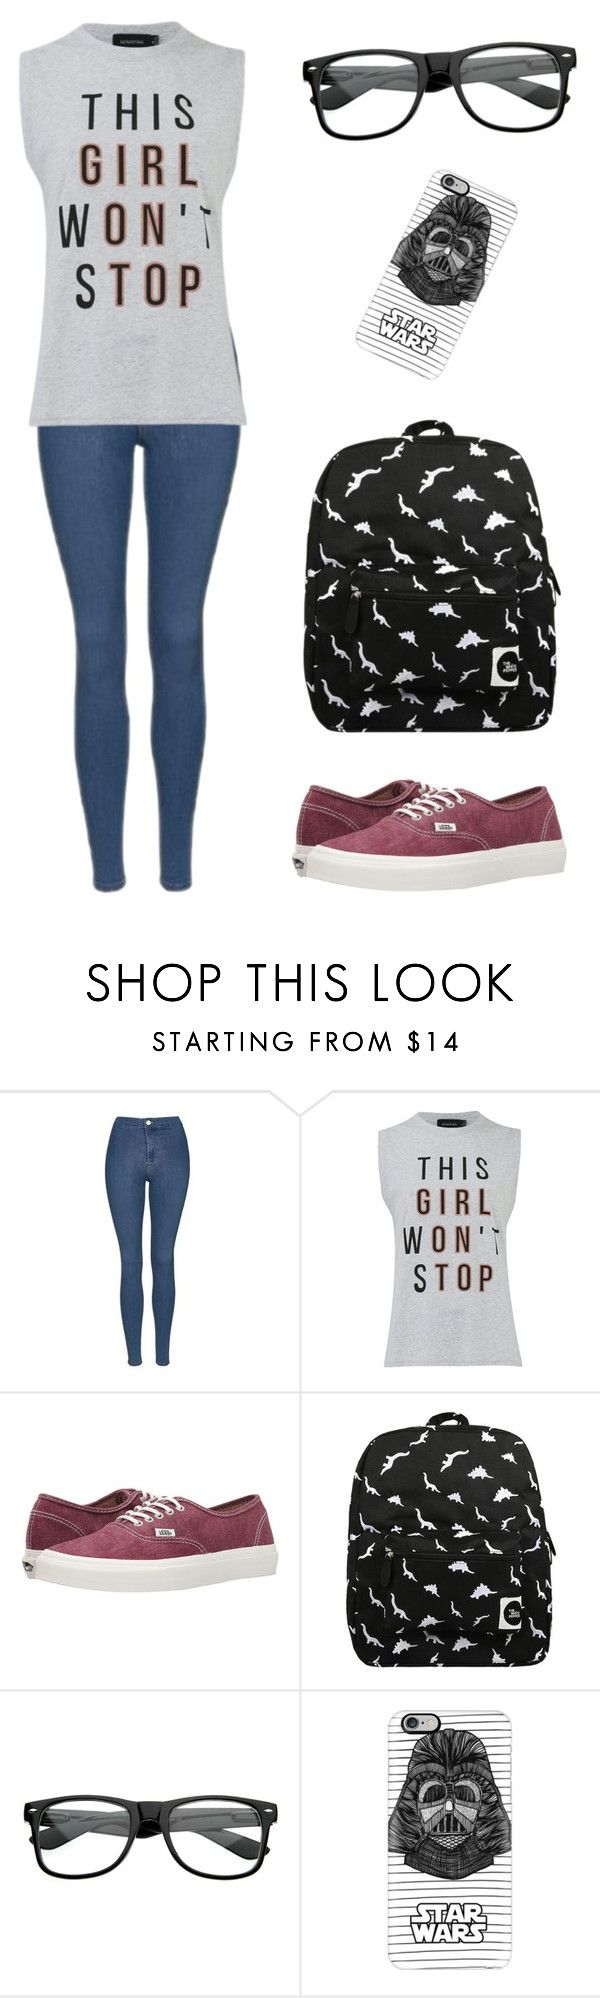 """Cool Geek"" by dancingmarionette ❤ liked on Polyvore featuring Topshop, MINKPINK, Vans, Forever 21 and Casetify"